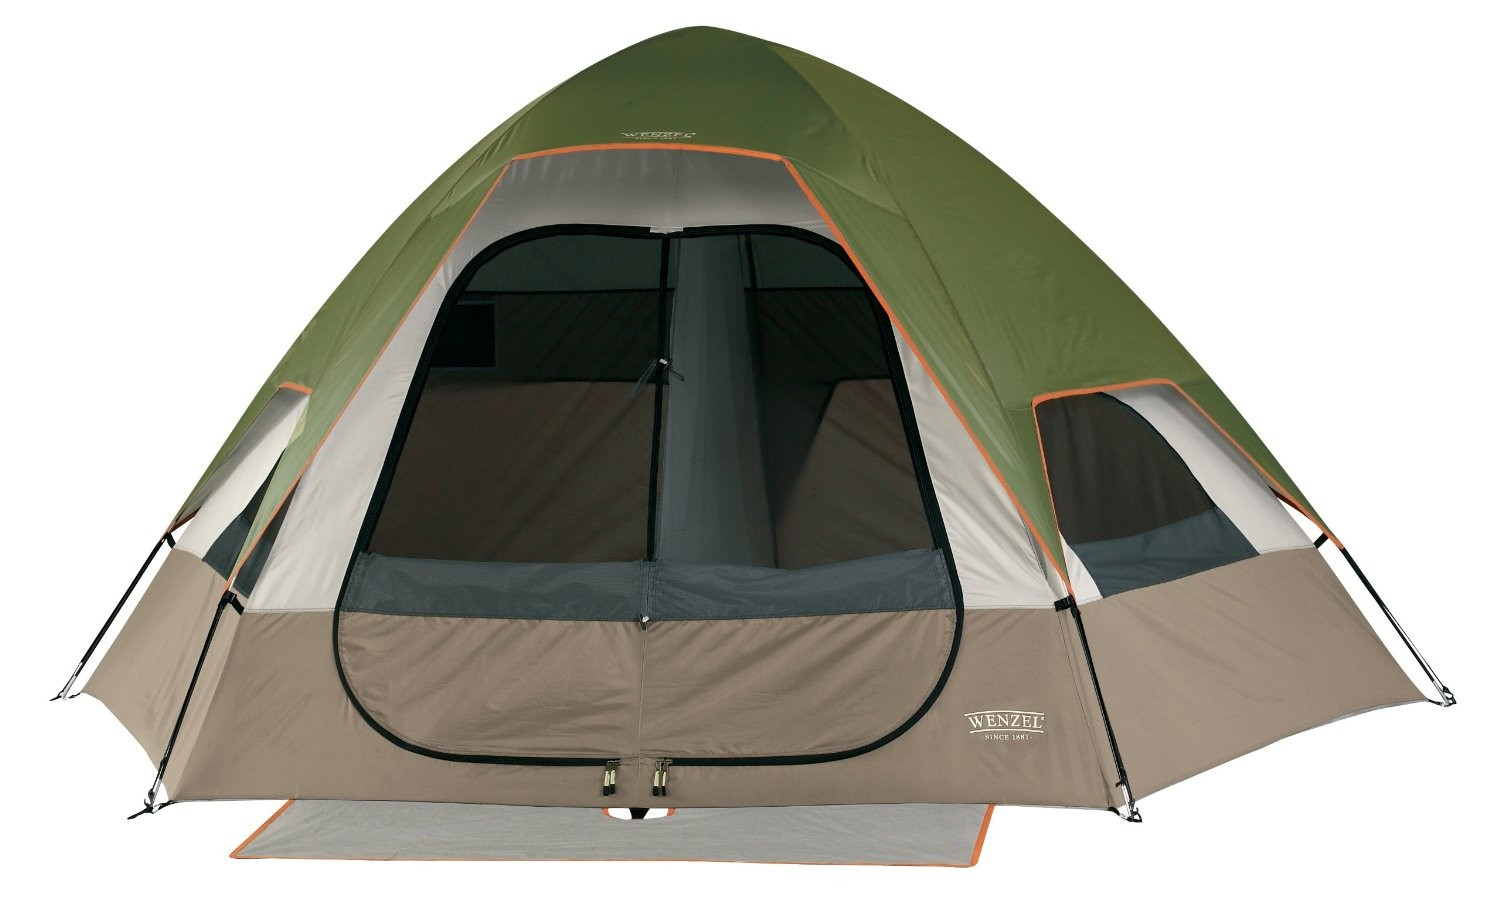 10 Foot Tent : Wenzel big bend by foot person room family dome tent